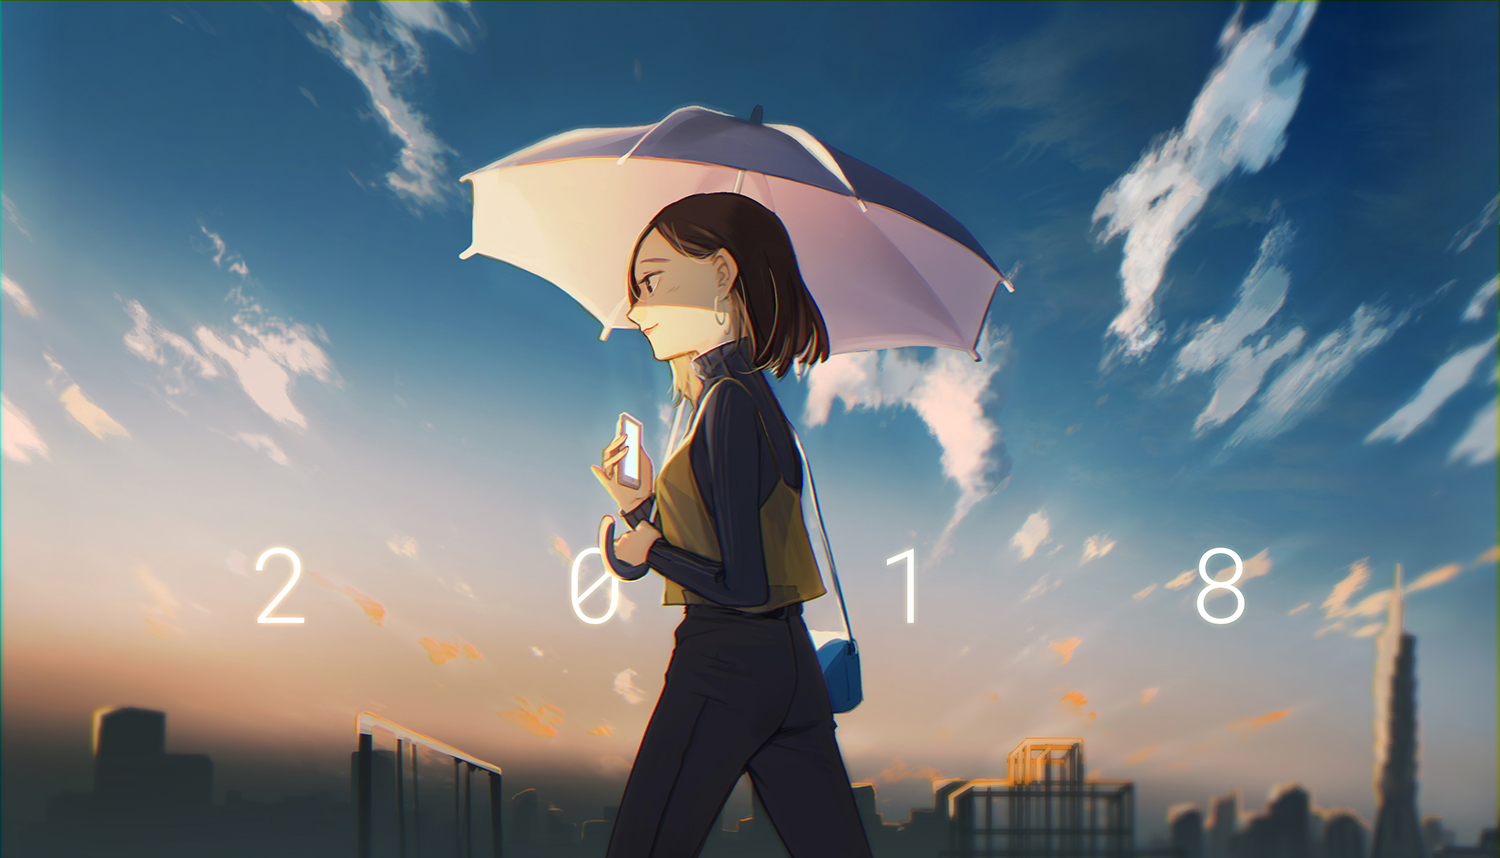 City-girl_2018_01_PNG